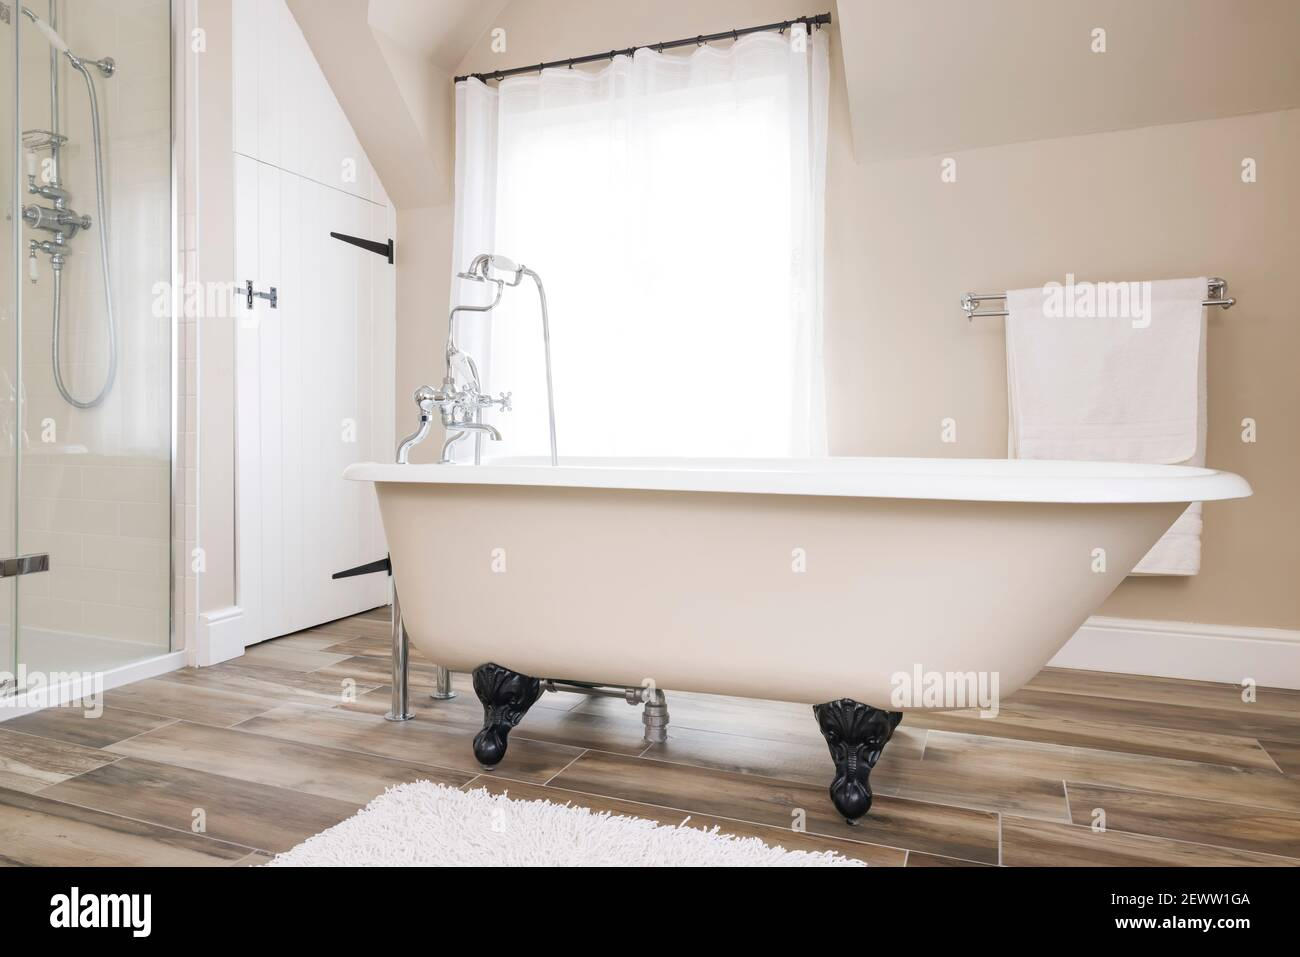 Cast Iron Bath High Resolution Stock Photography and Images - Alamy